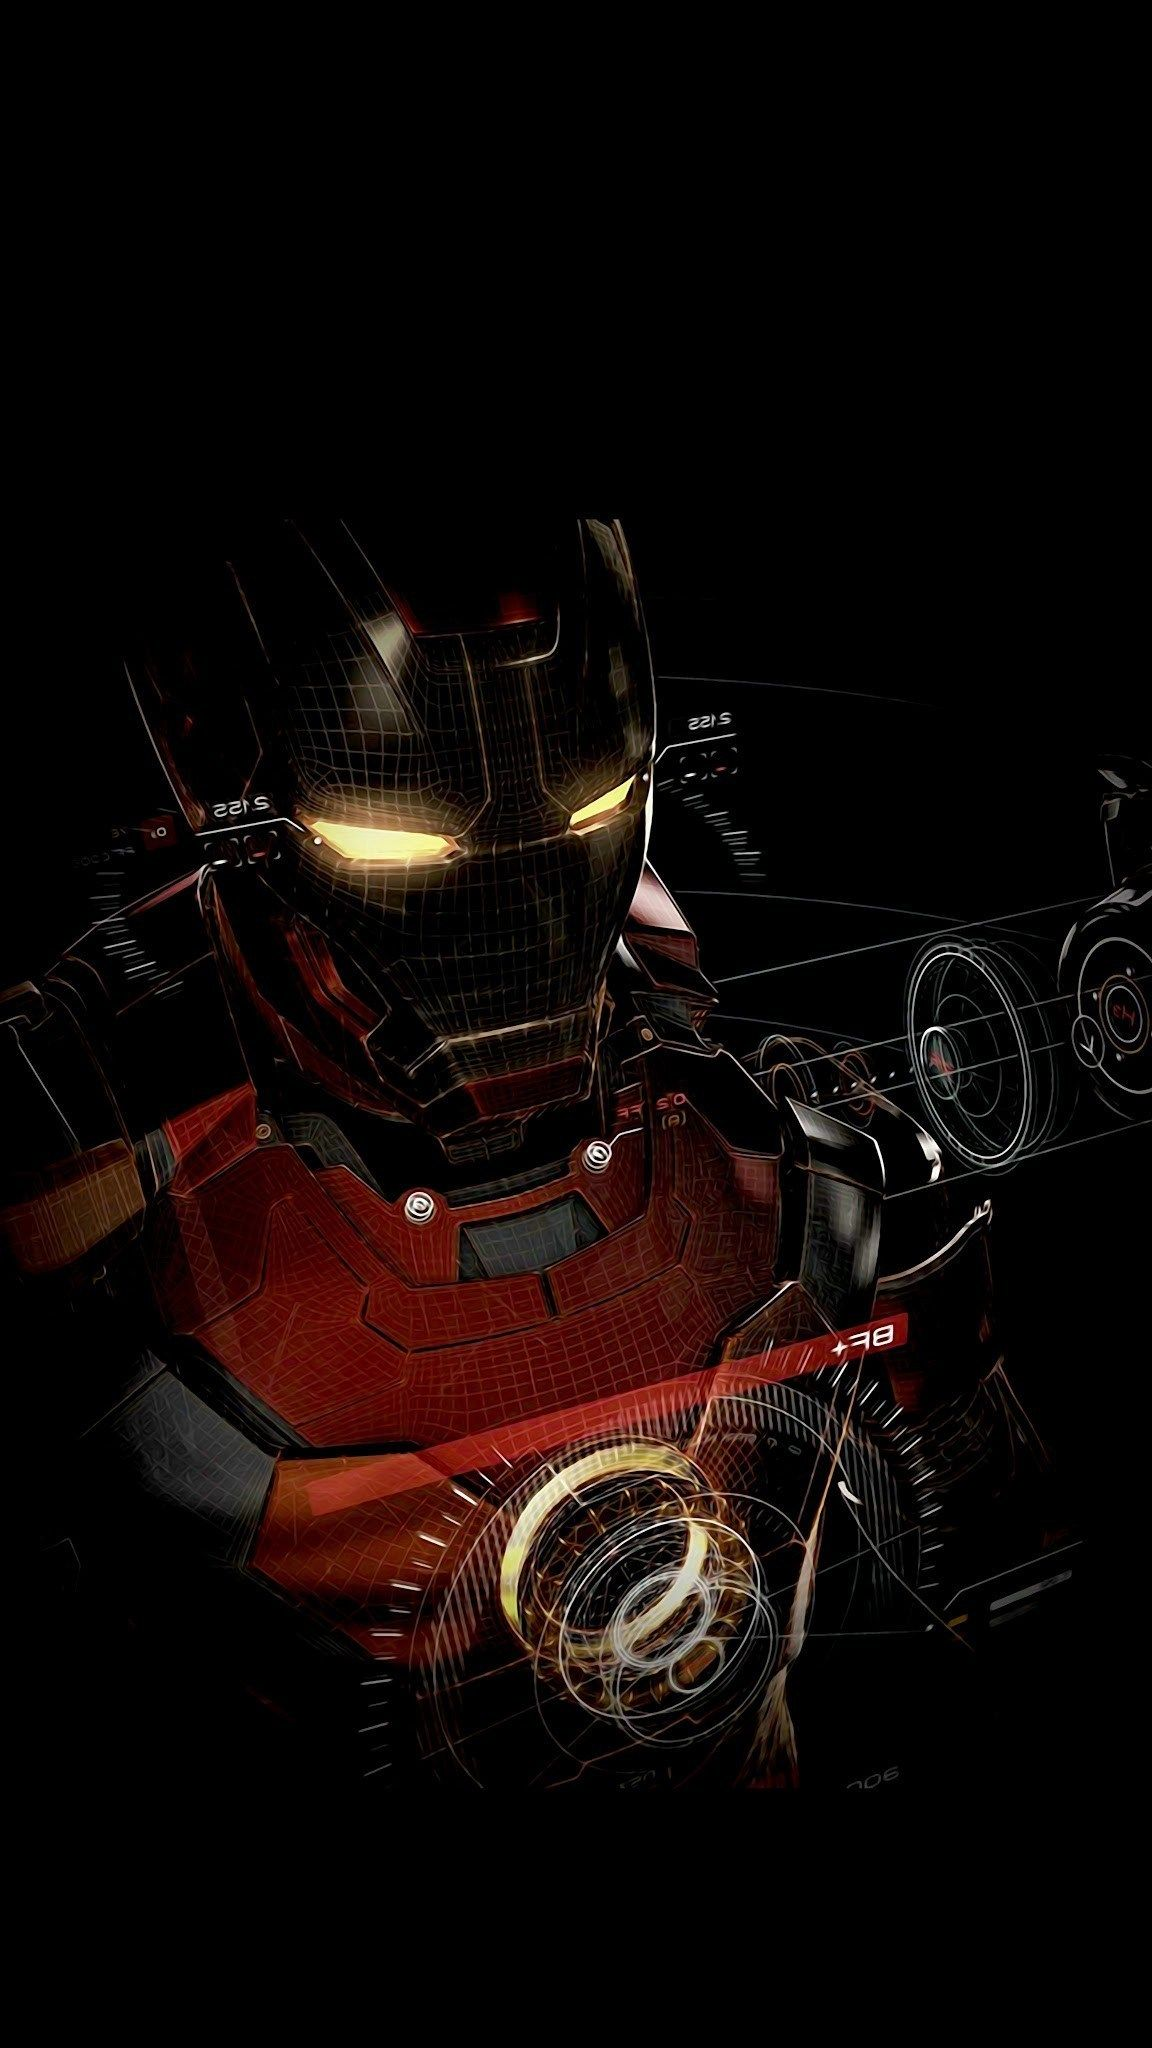 Iron Man Fondos Pantalla Marvel 4k Hd Comics Pinterest Wallpapers Celular Smartphone Android Iphone 26 Con Imagenes Fondo De Pantalla De Iron Man